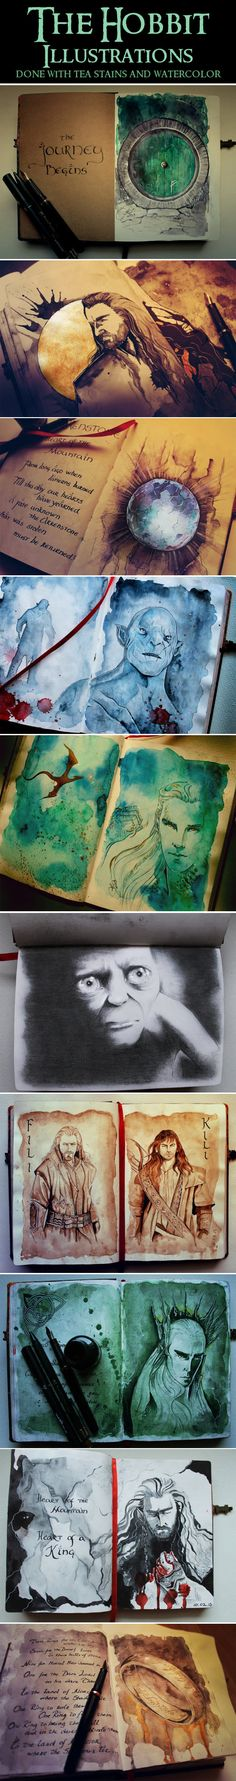 The Hobbit Illustrations (BENEDICT CUMBERBATCH OH MY GOD)